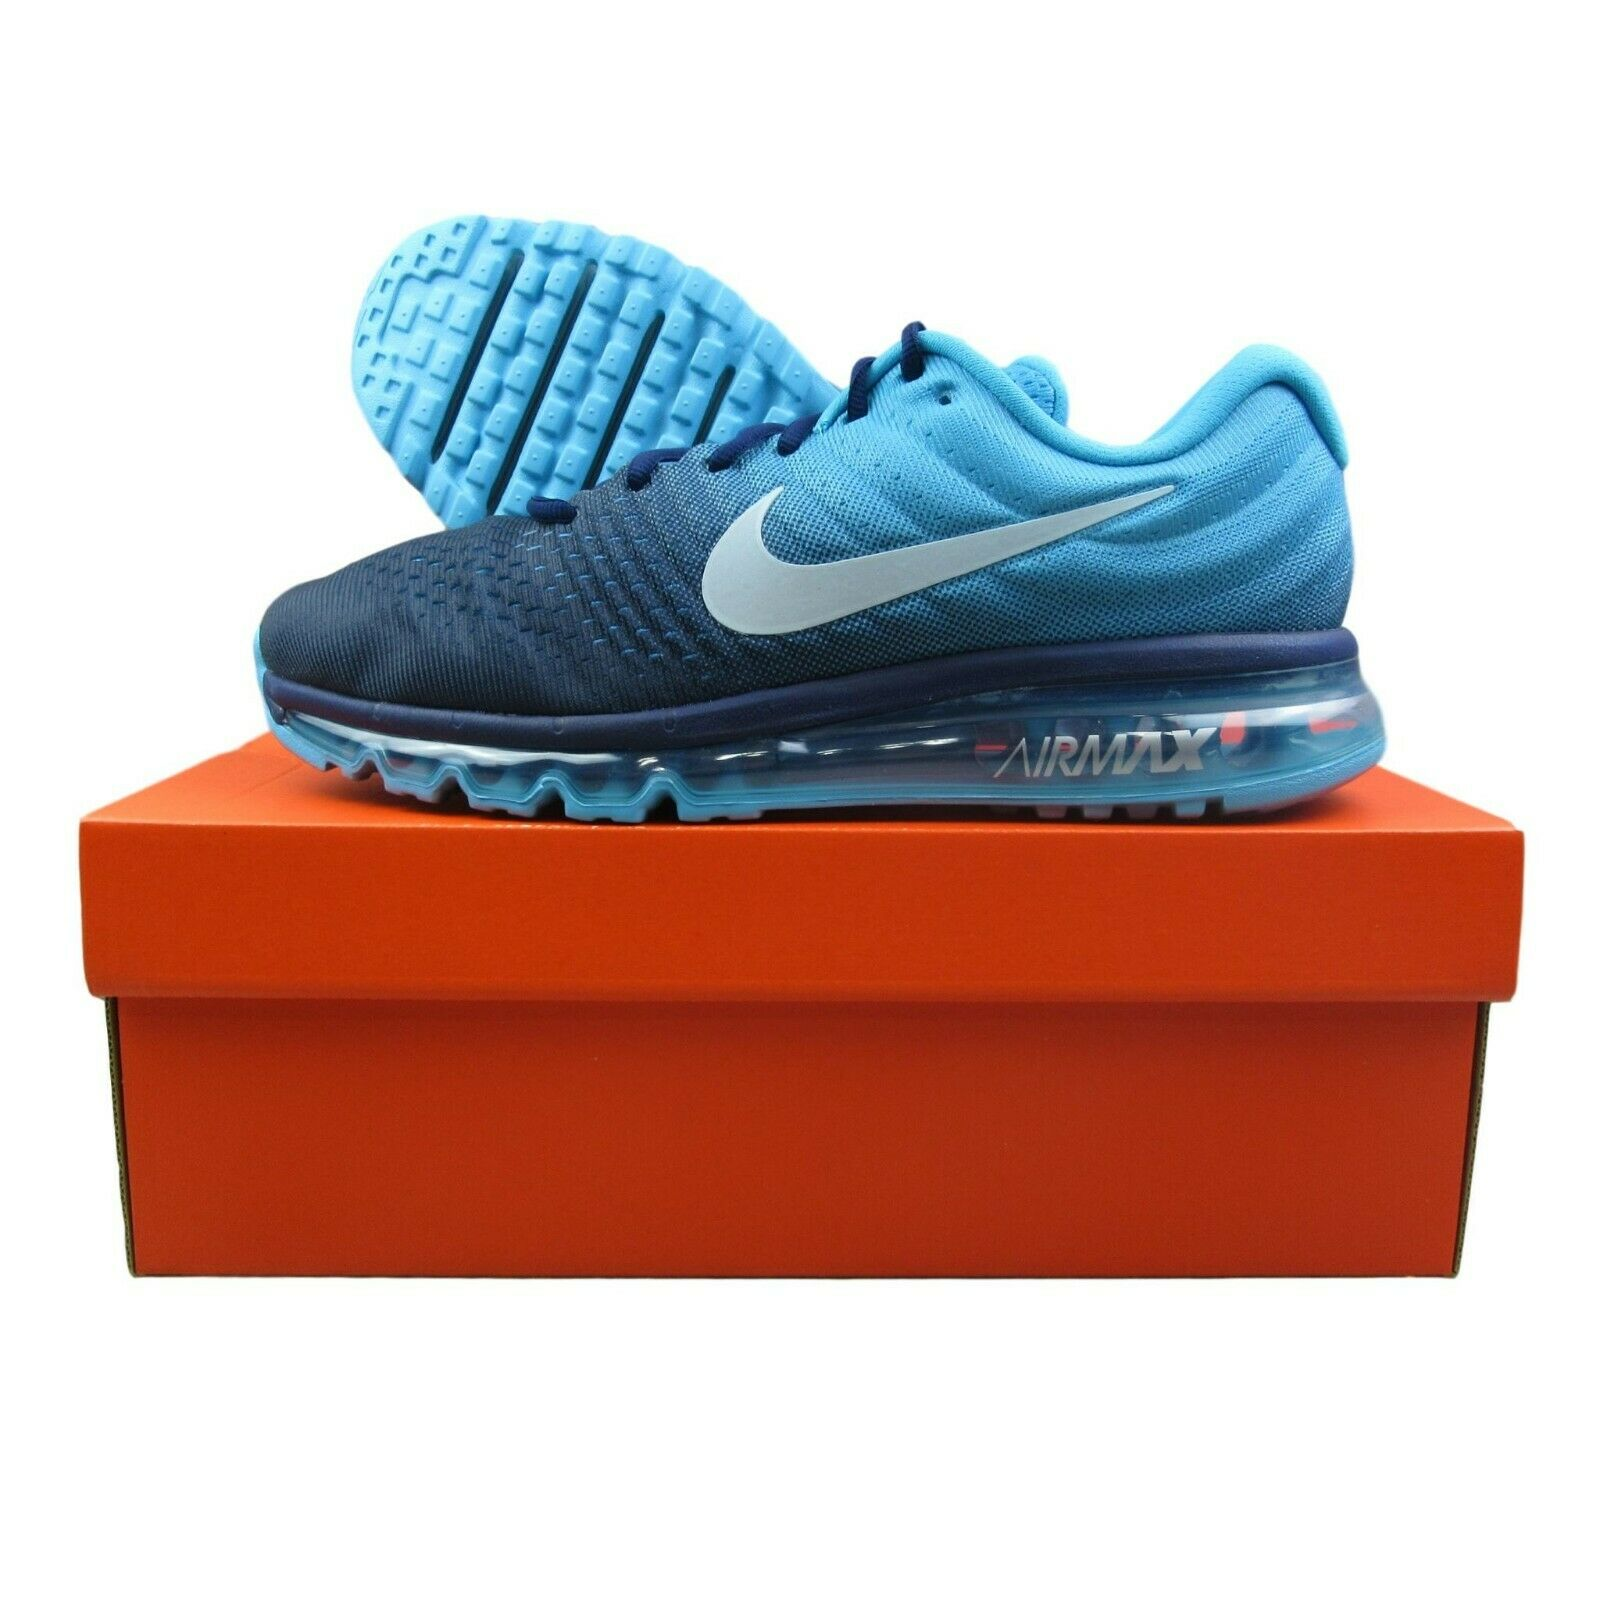 High Quality Nike Air Max 90 Essential Wolf Grey Binary Blue White 537384 064 Men's Running Shoes Jogging Shoes